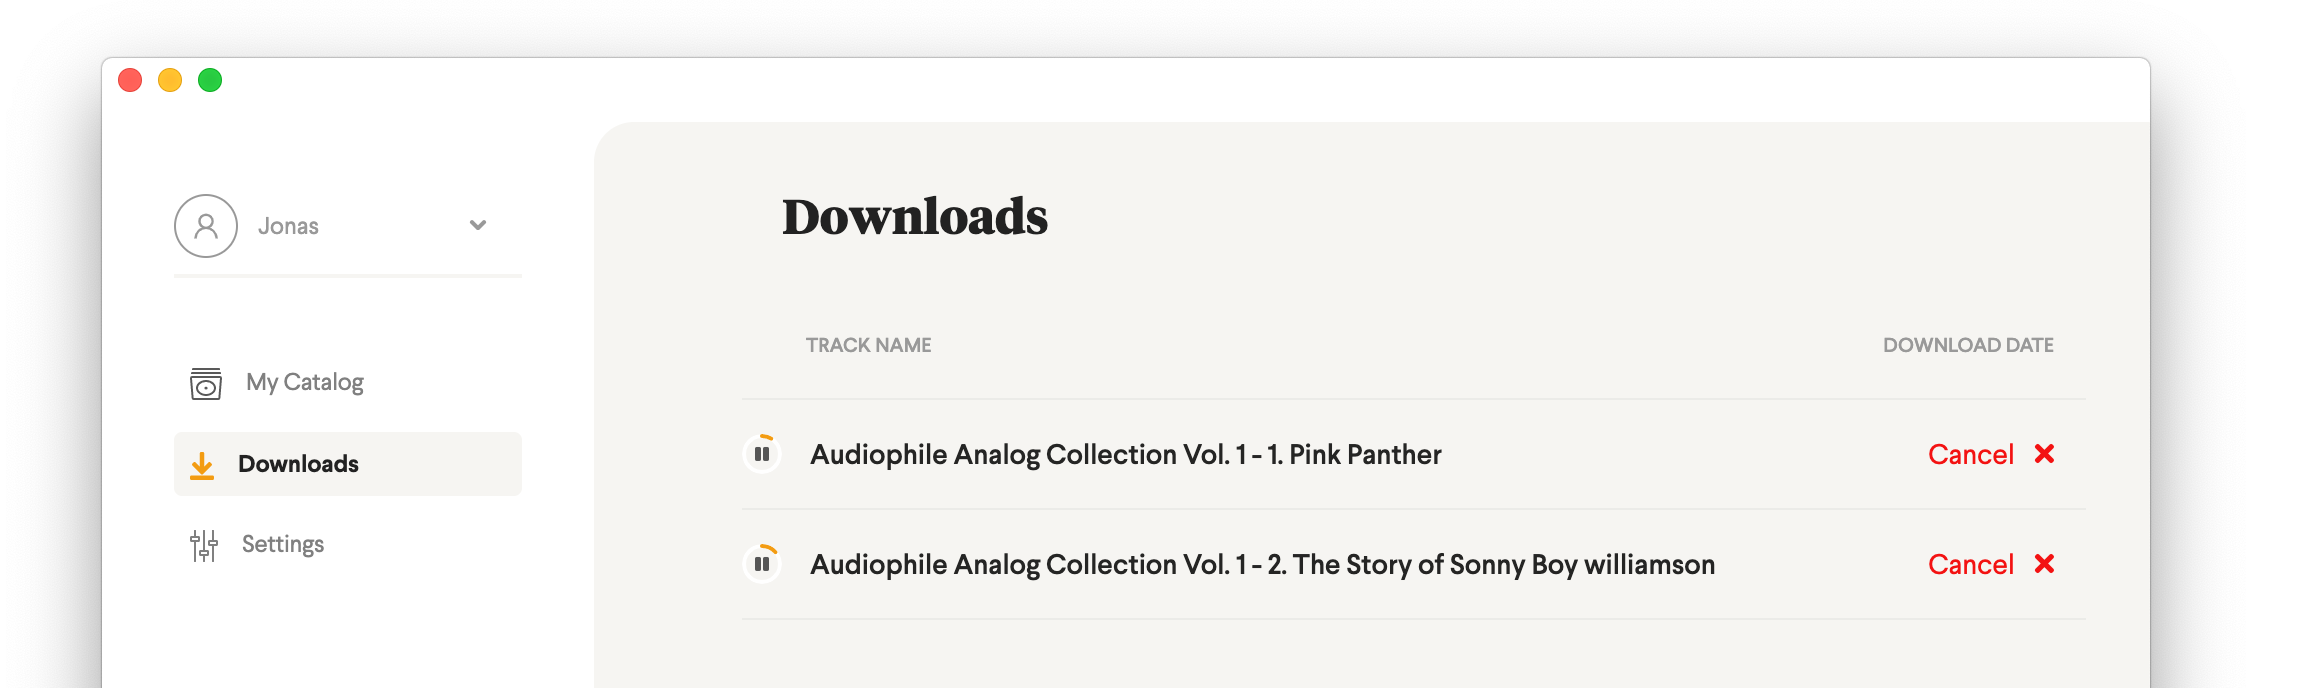 Downloads overview page